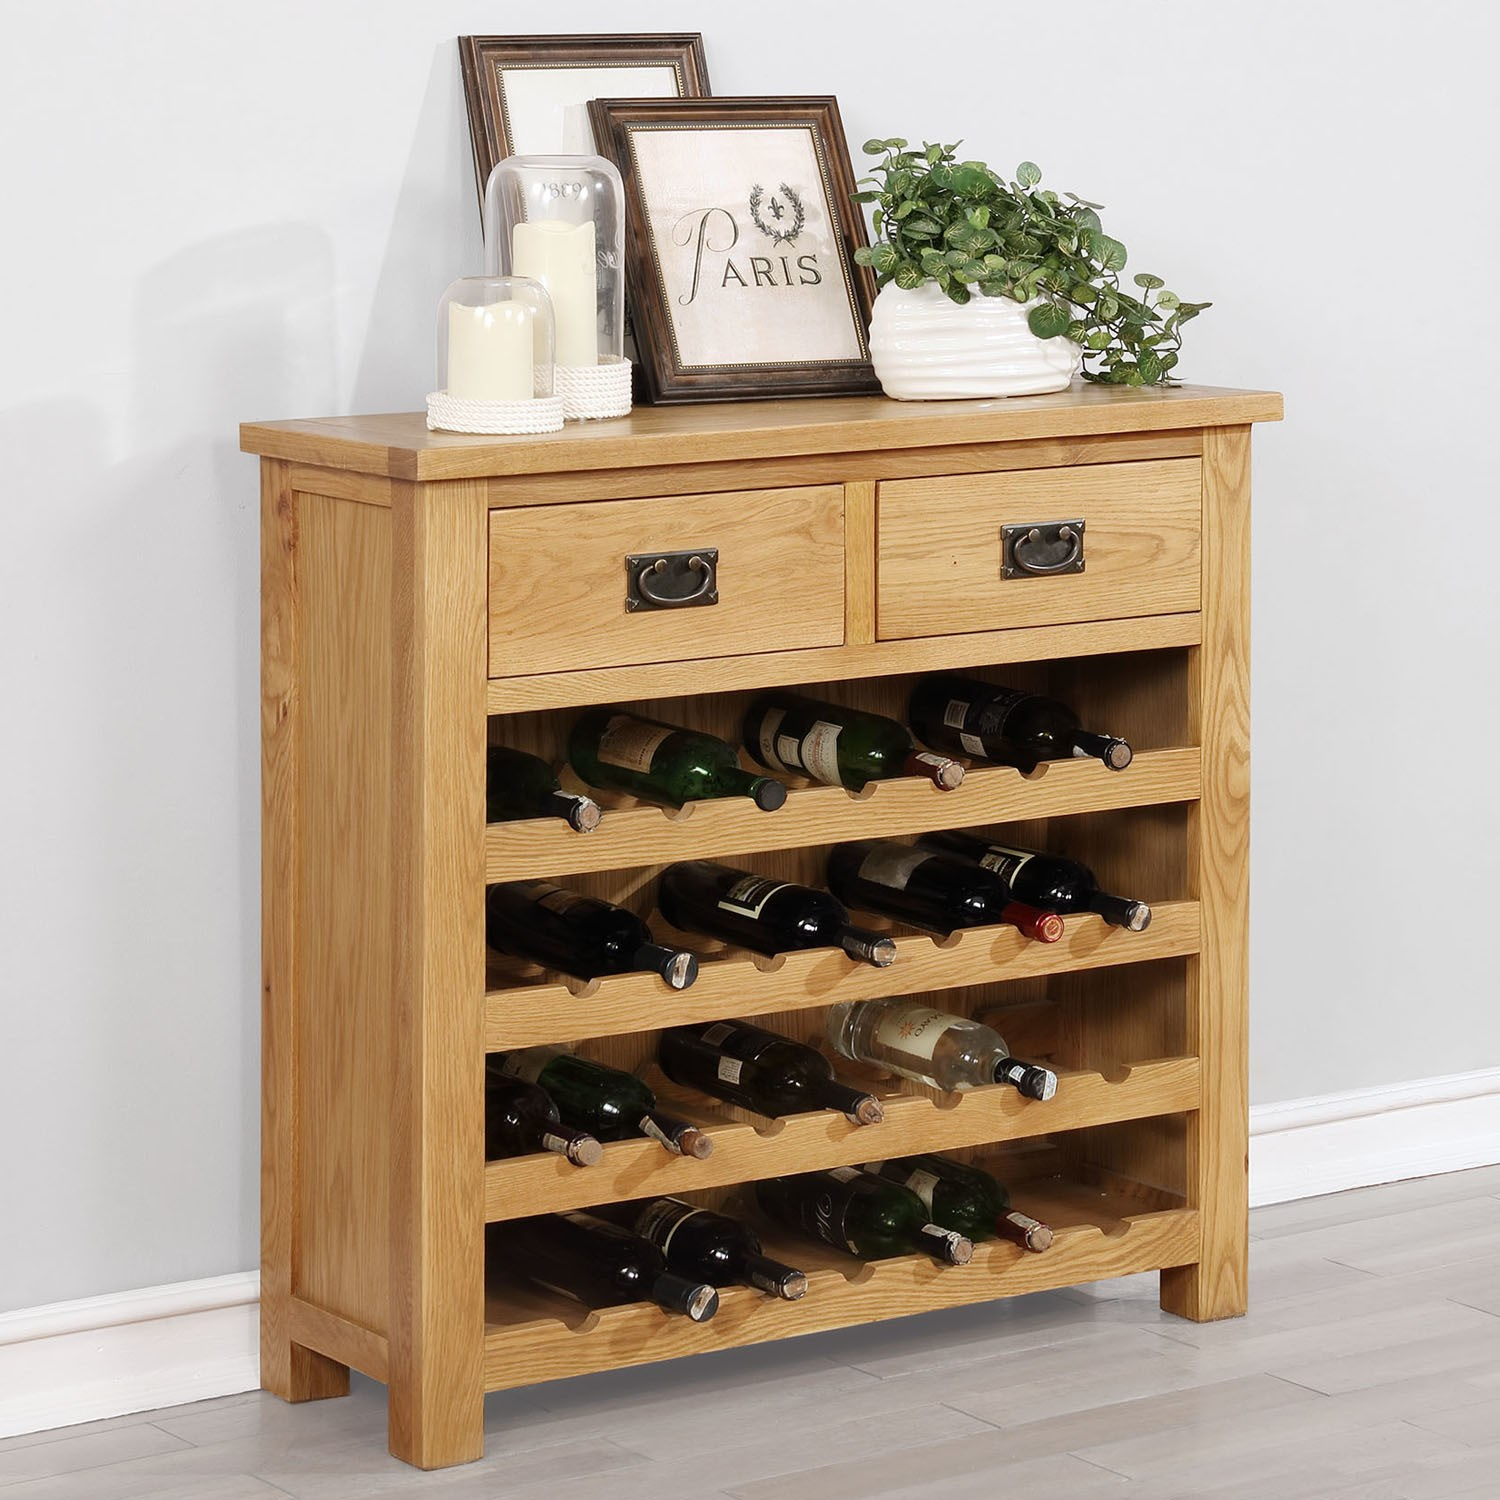 Grade A1 Solid Oak Wine Rack Cabinet With Storage Drawers Rustic S A1 Sax022 Ebay